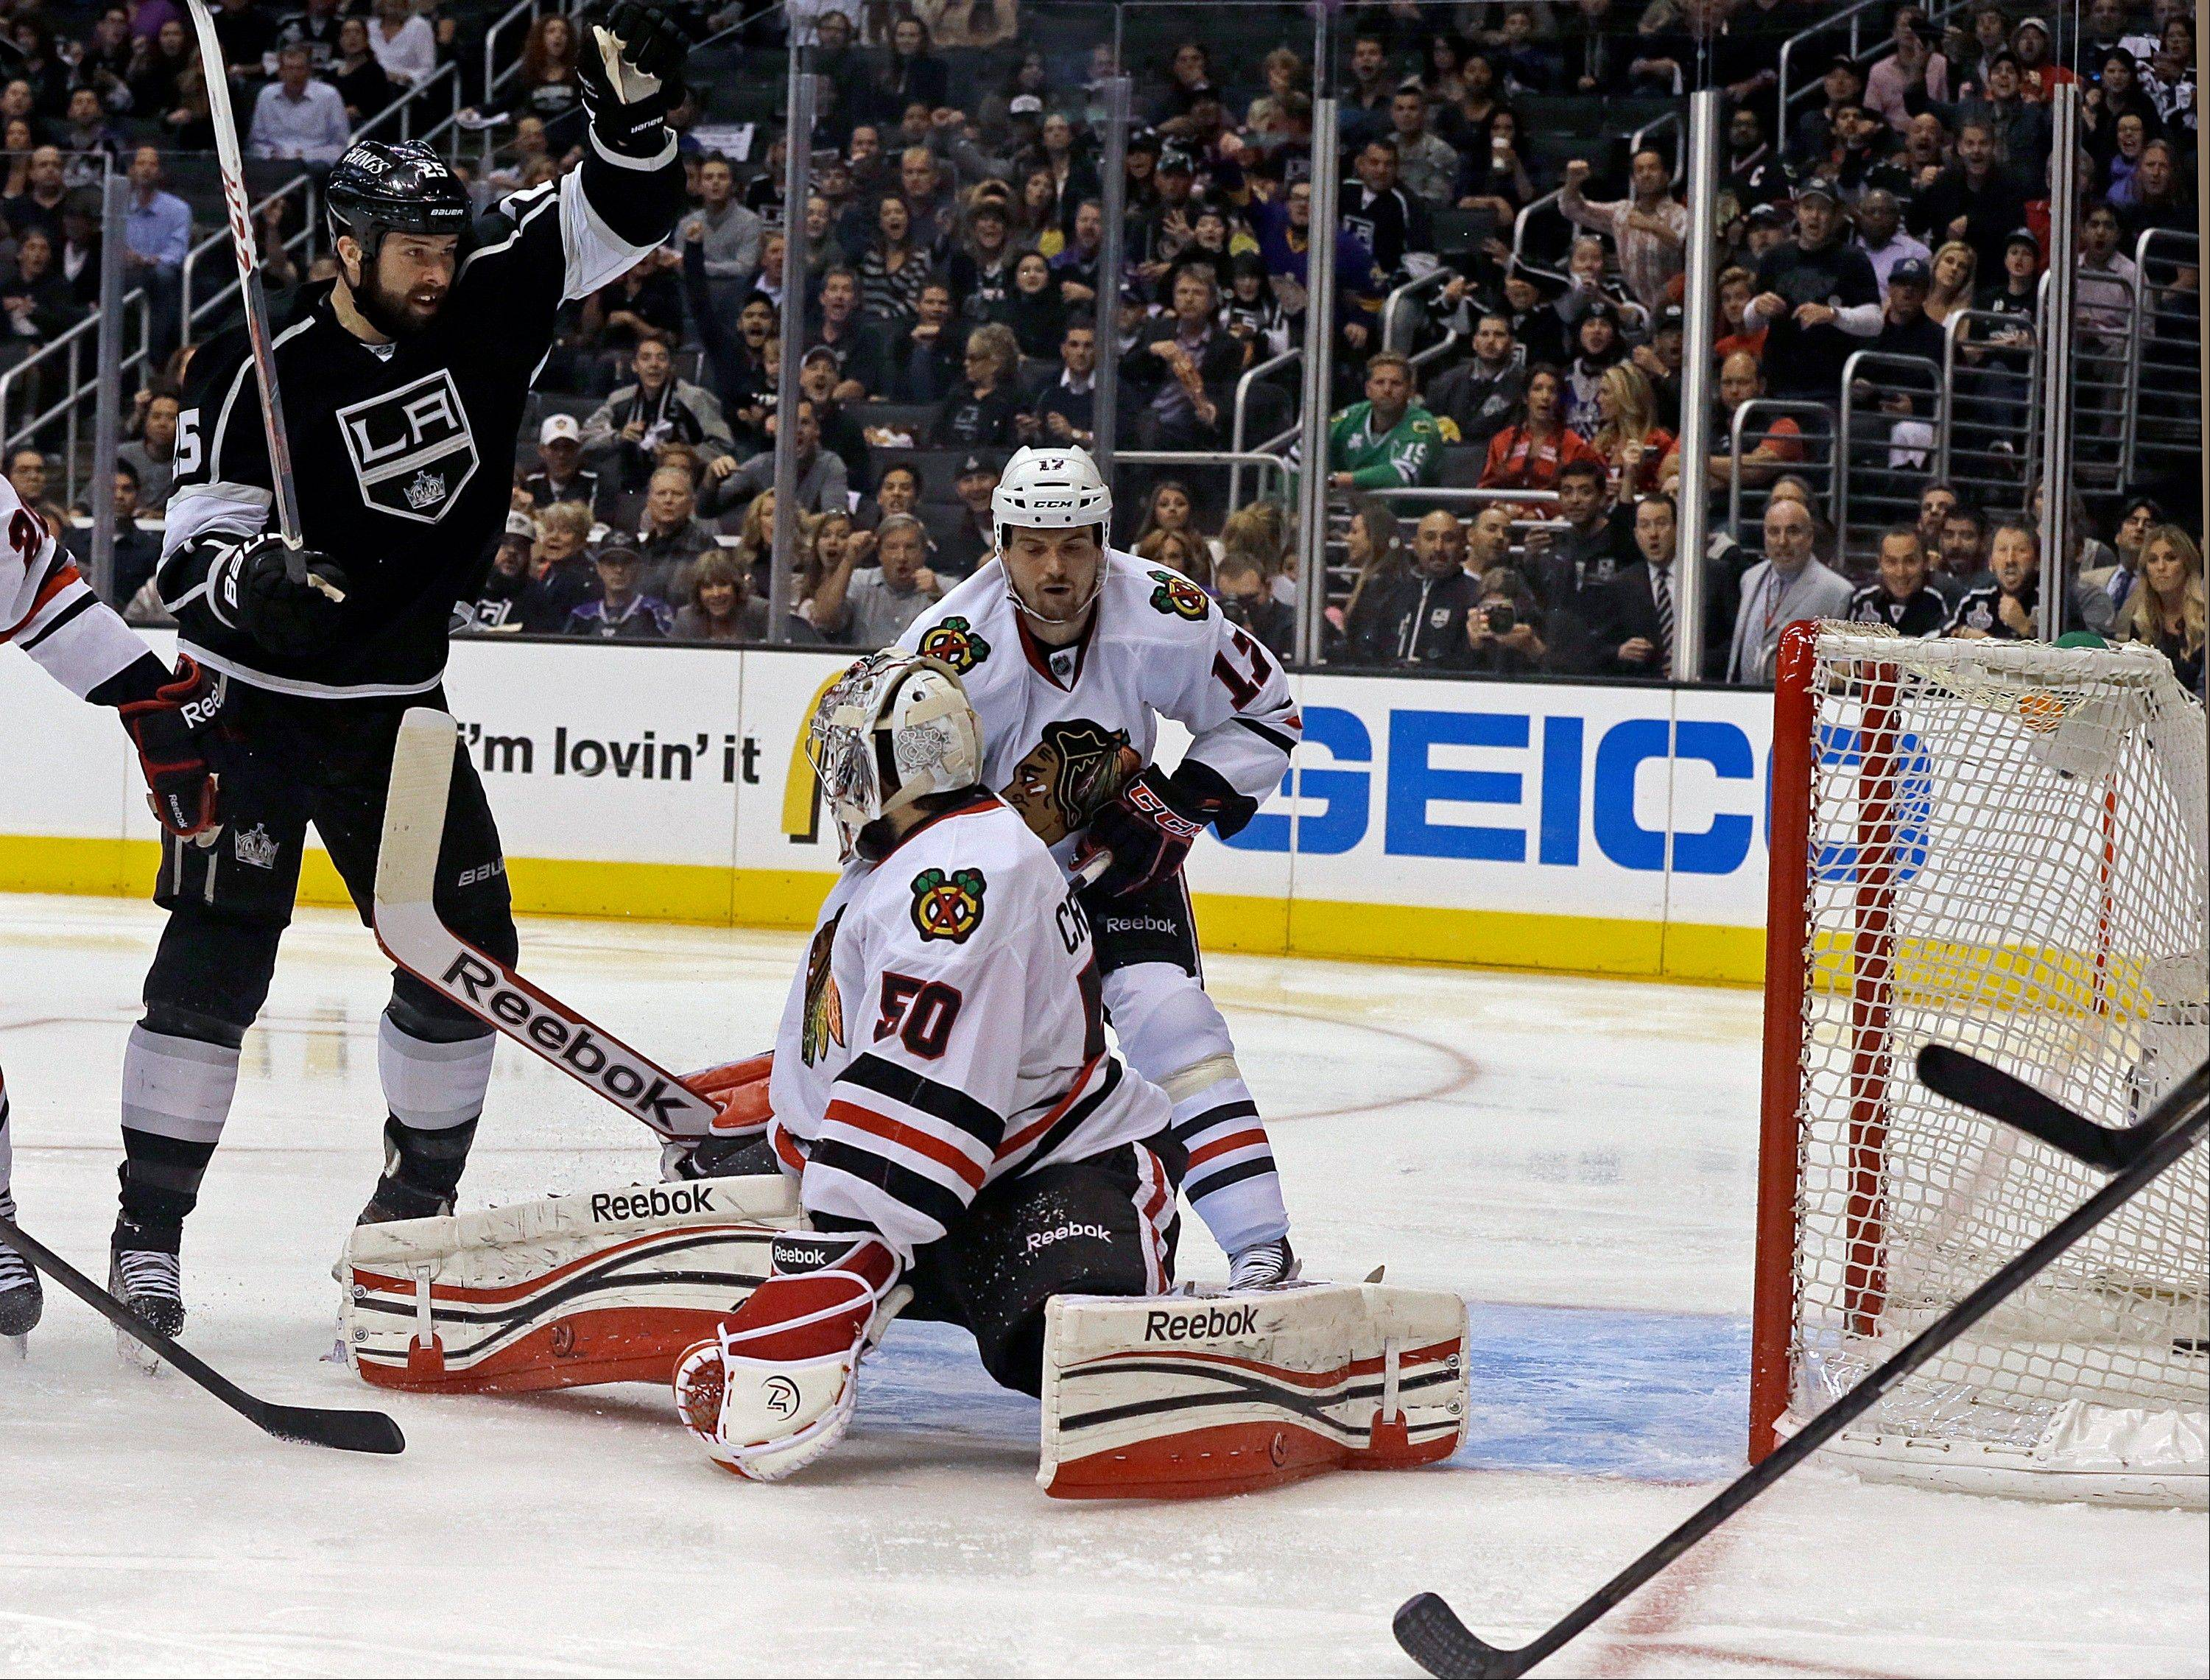 Los Angeles Kings left winger Dustin Penner, left, celebrates his goal against Chicago Blackhawks goalie Corey Crawford (50) in the second period of Game 4 of the NHL hockey Stanley Cup playoffs Western Conference finals, in Los Angeles on Thursday, June 6, 2013.